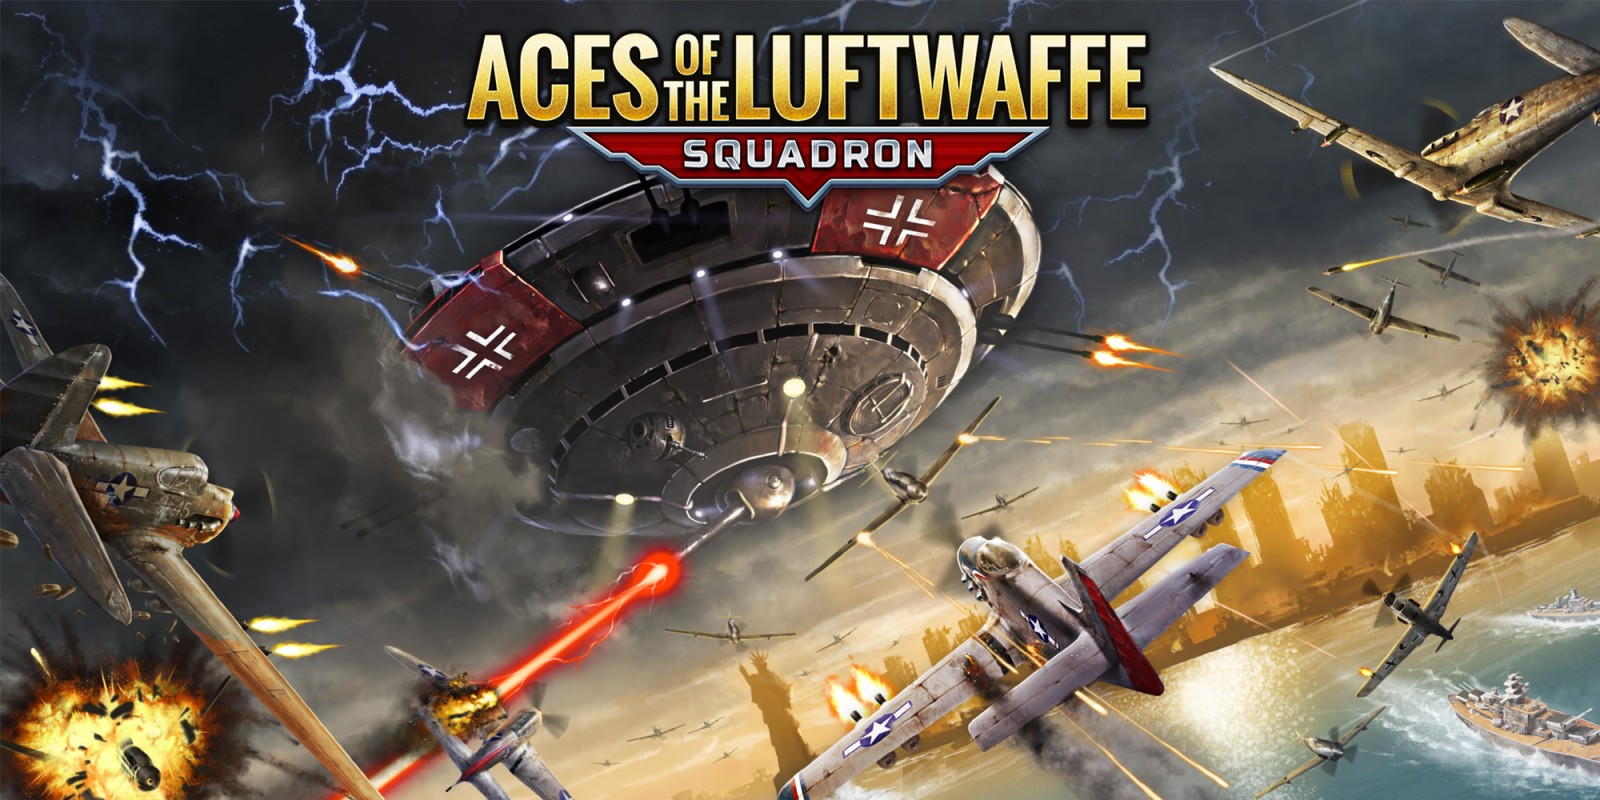 aces-of-the-luftwaffe